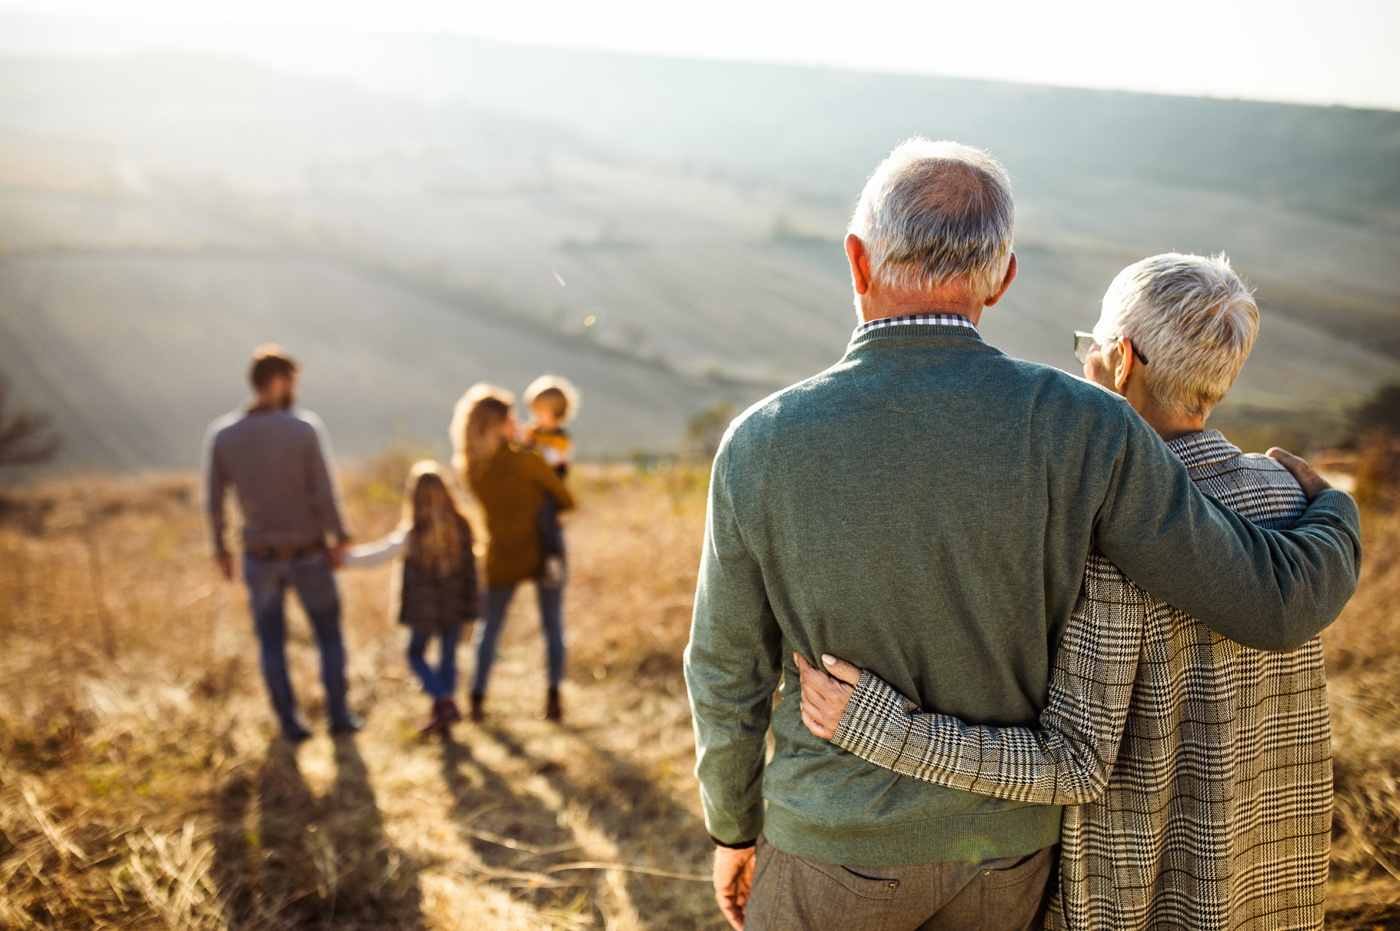 Elderly man and woman observing family